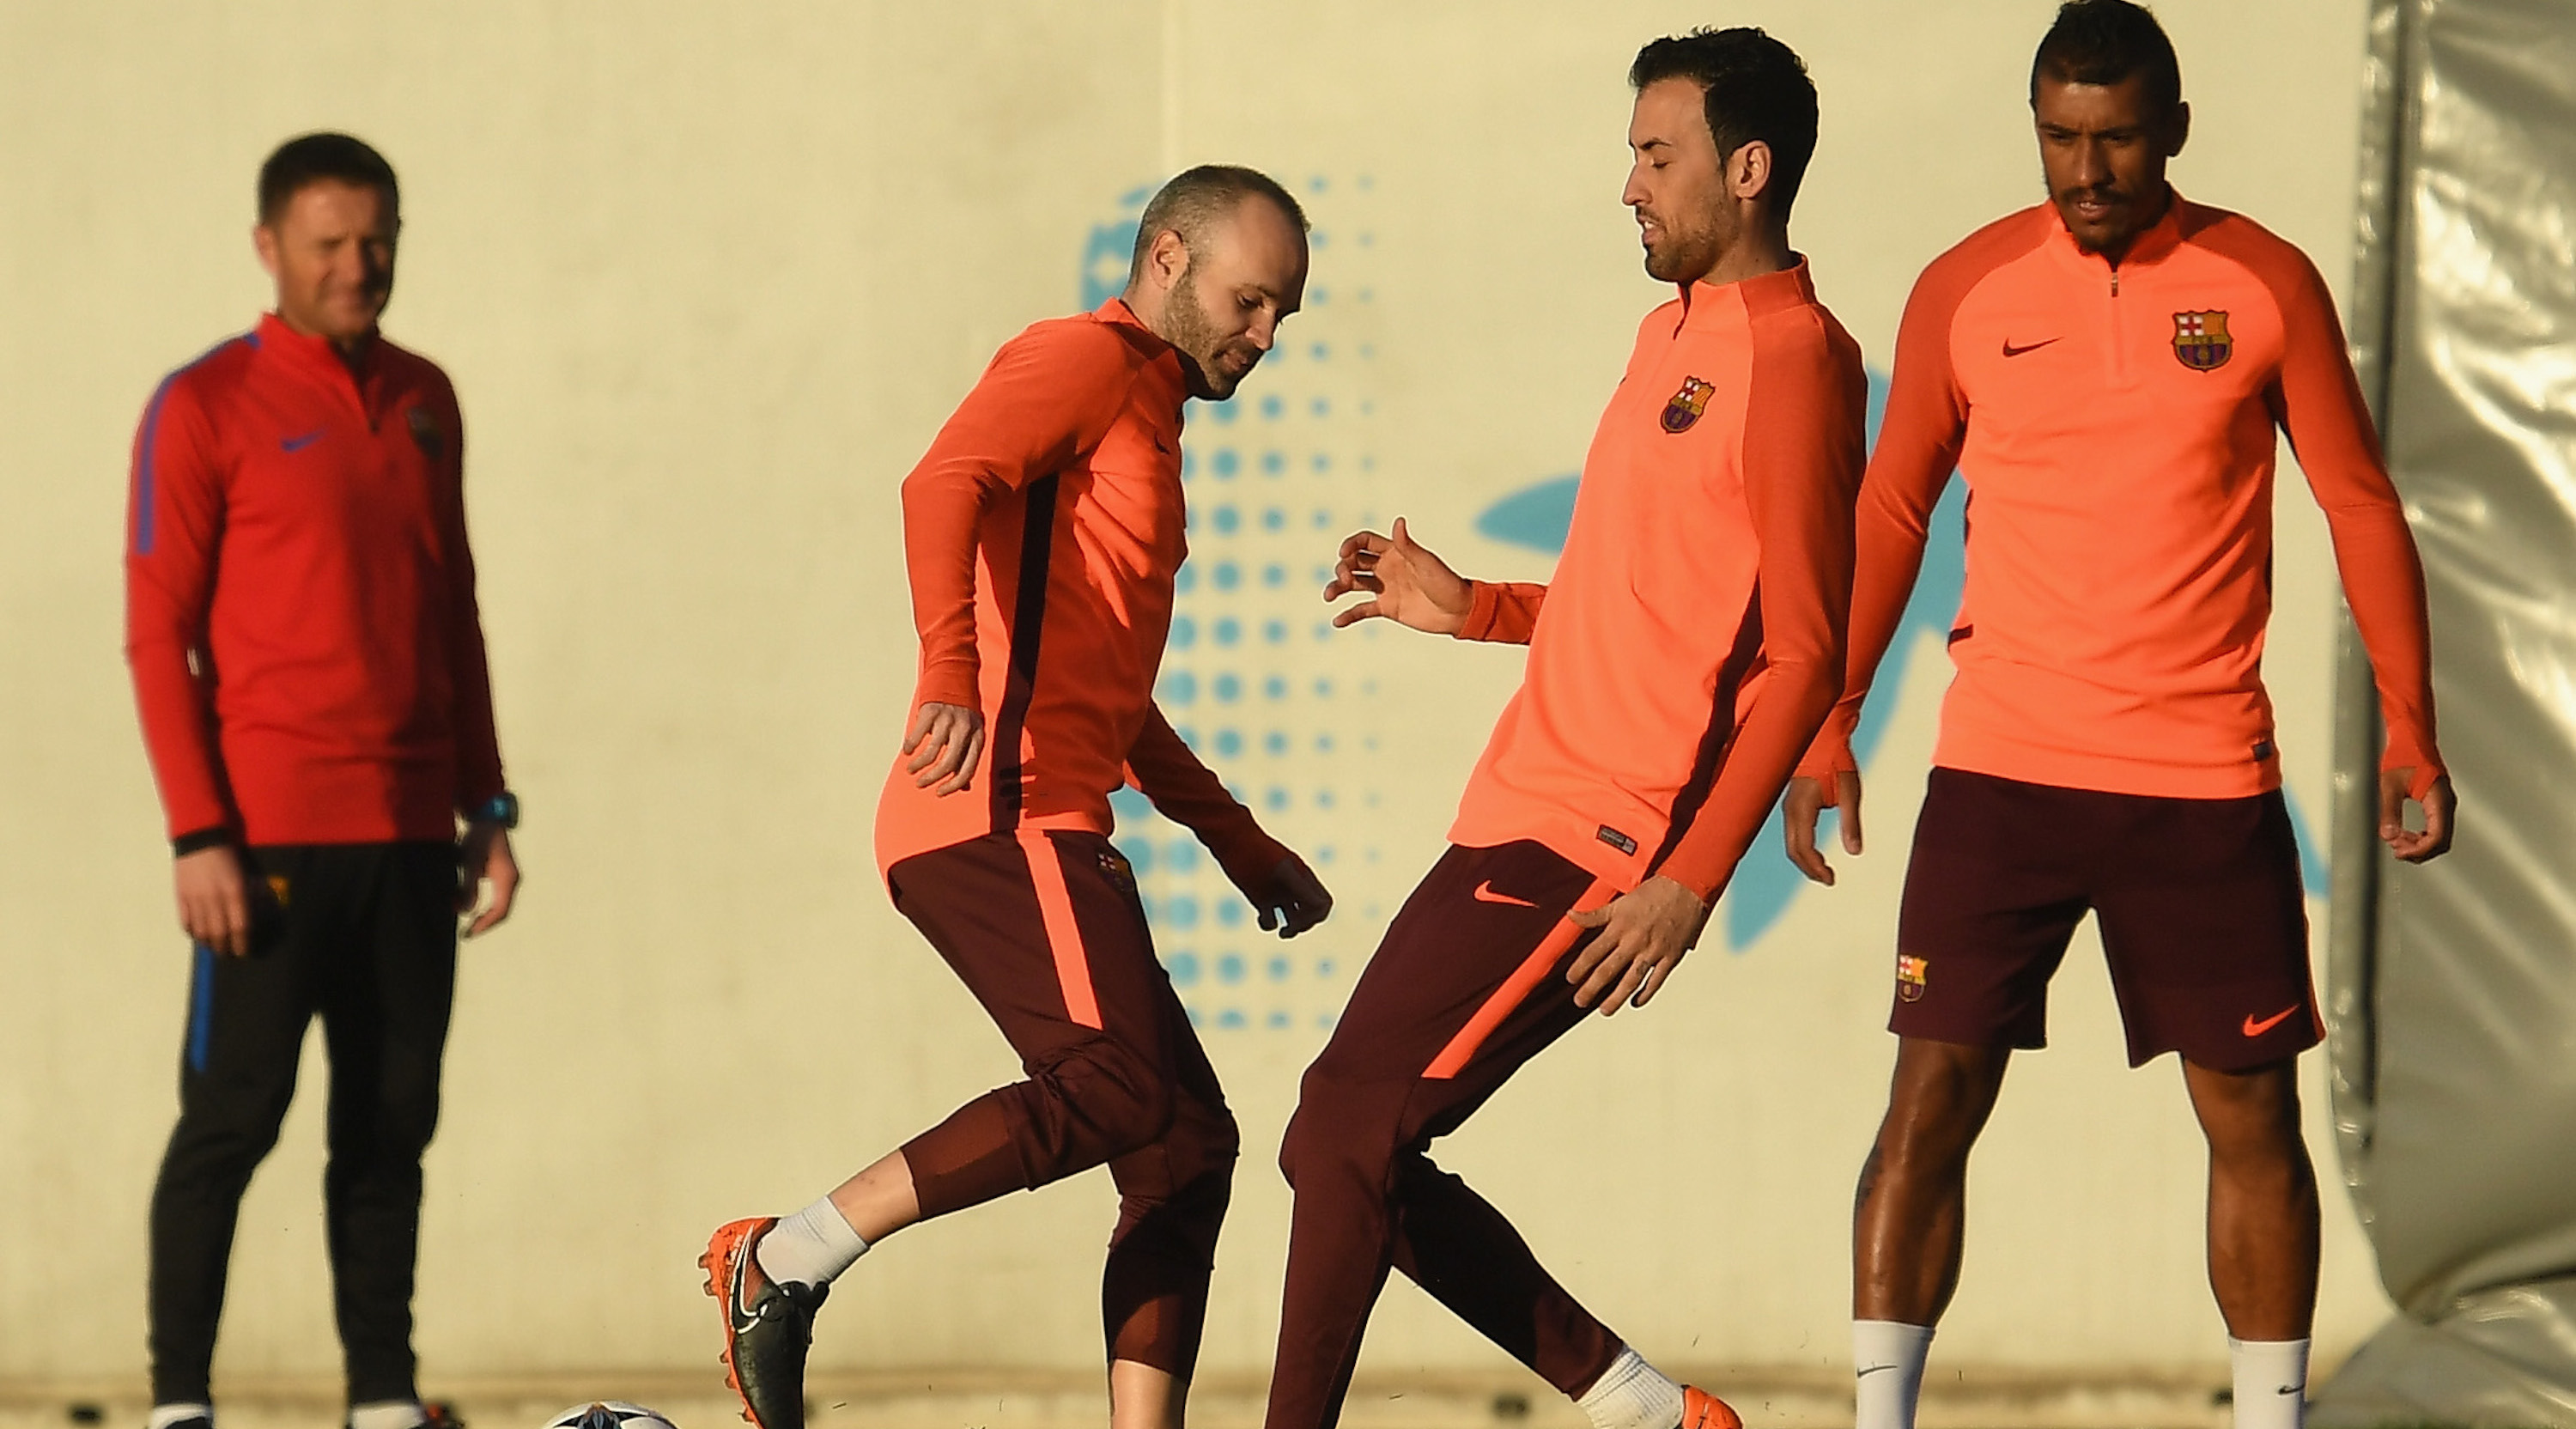 BARCELONA, SPAIN - MARCH 13: Sergio Busquests trains with Andres Iniesta and teammates during a Barcelona training session ahead of their UEFA Champions League Round of 16 match against Chelsea at Nou Camp on March 13, 2018 in Barcelona, Spain. (Photo by David Ramos/Getty Images)